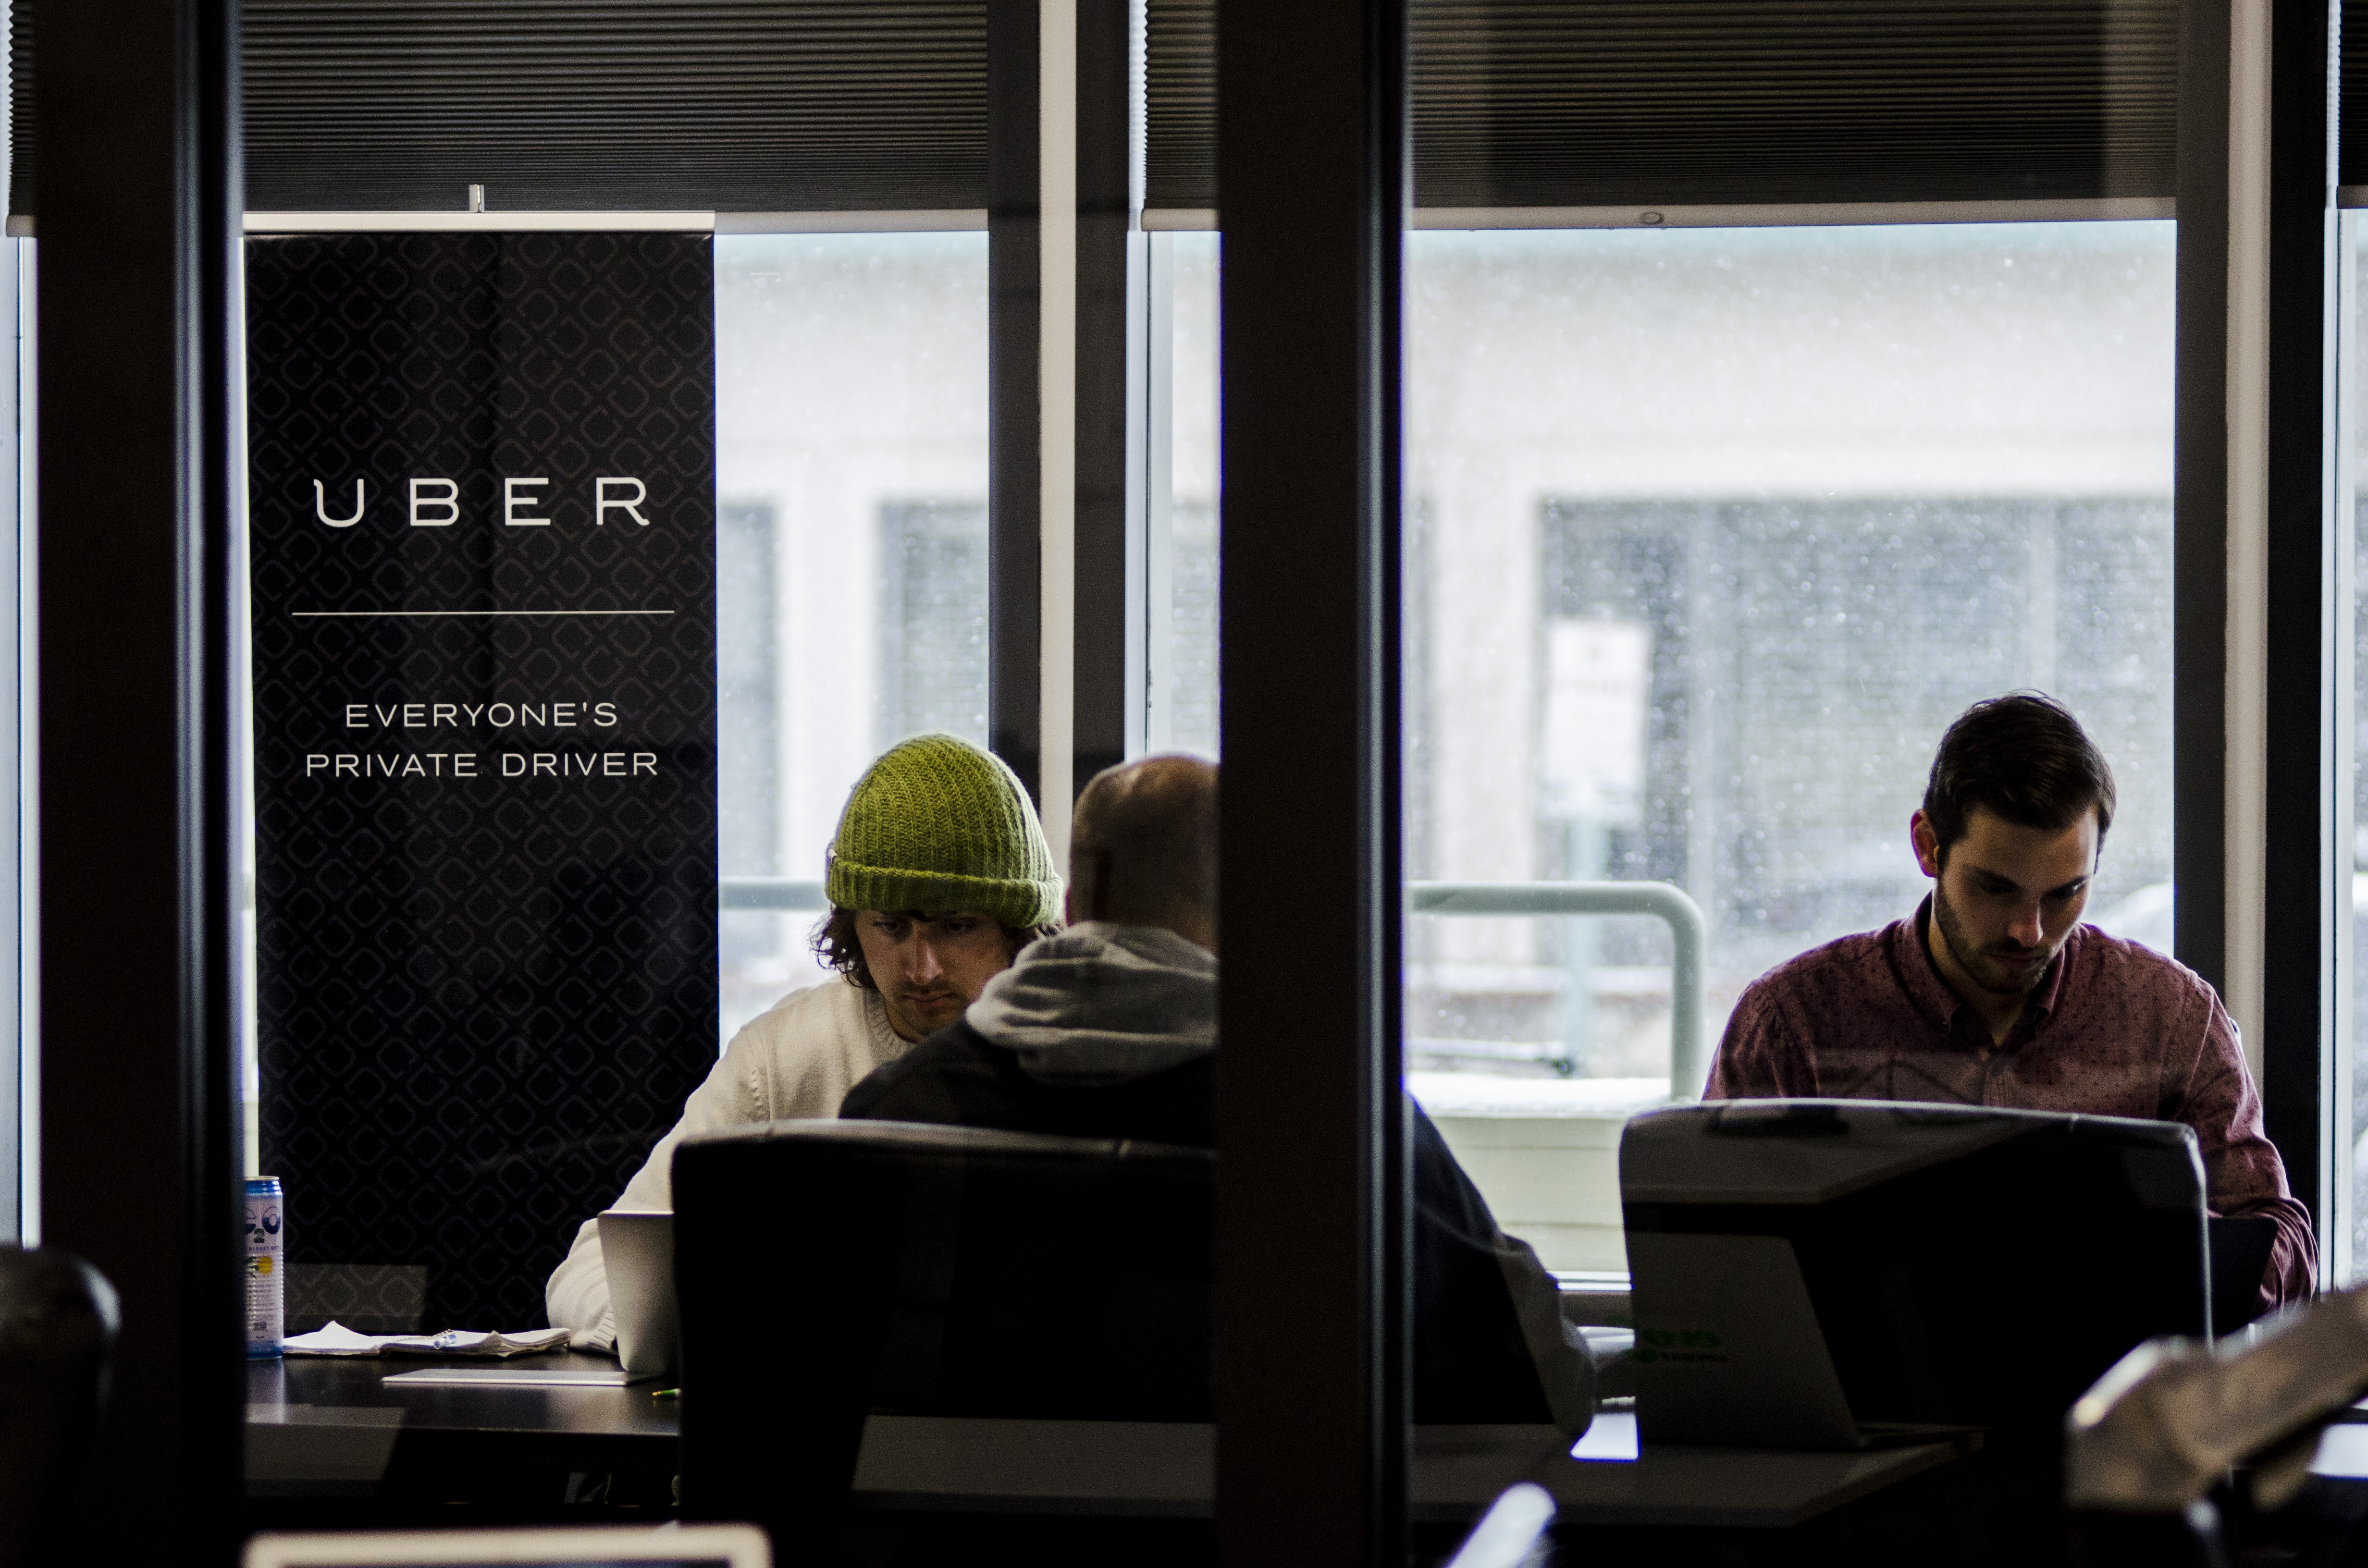 Photo: Uber event in Frisco